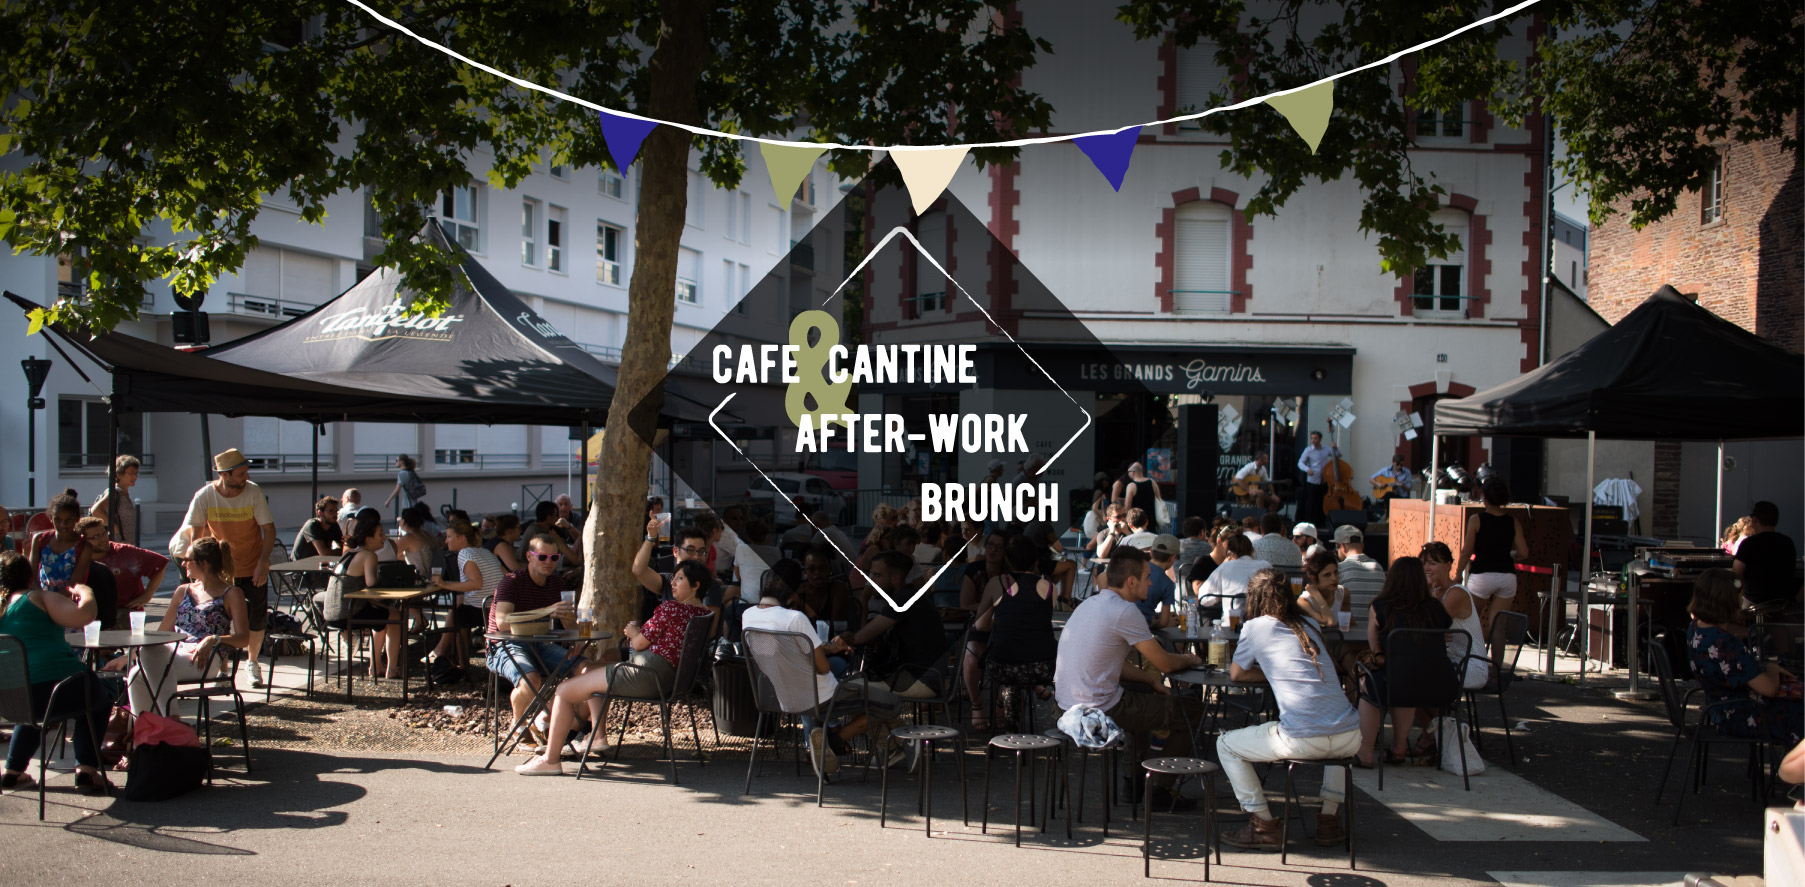 Terrasse Les Grands Gamins café cantine after-work brunch Rennes